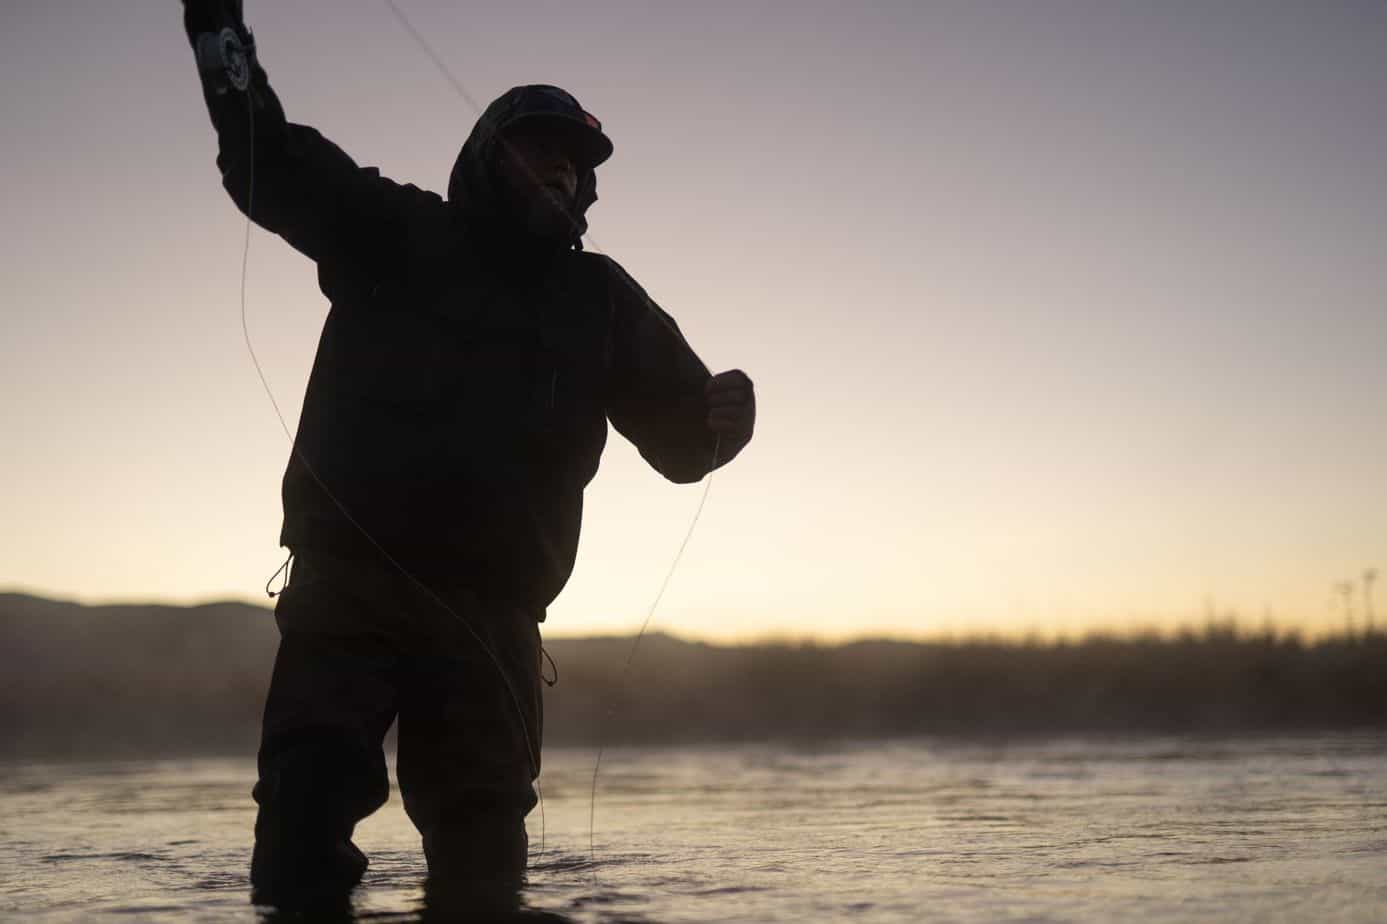 What Is A Tippet In Fly Fishing?